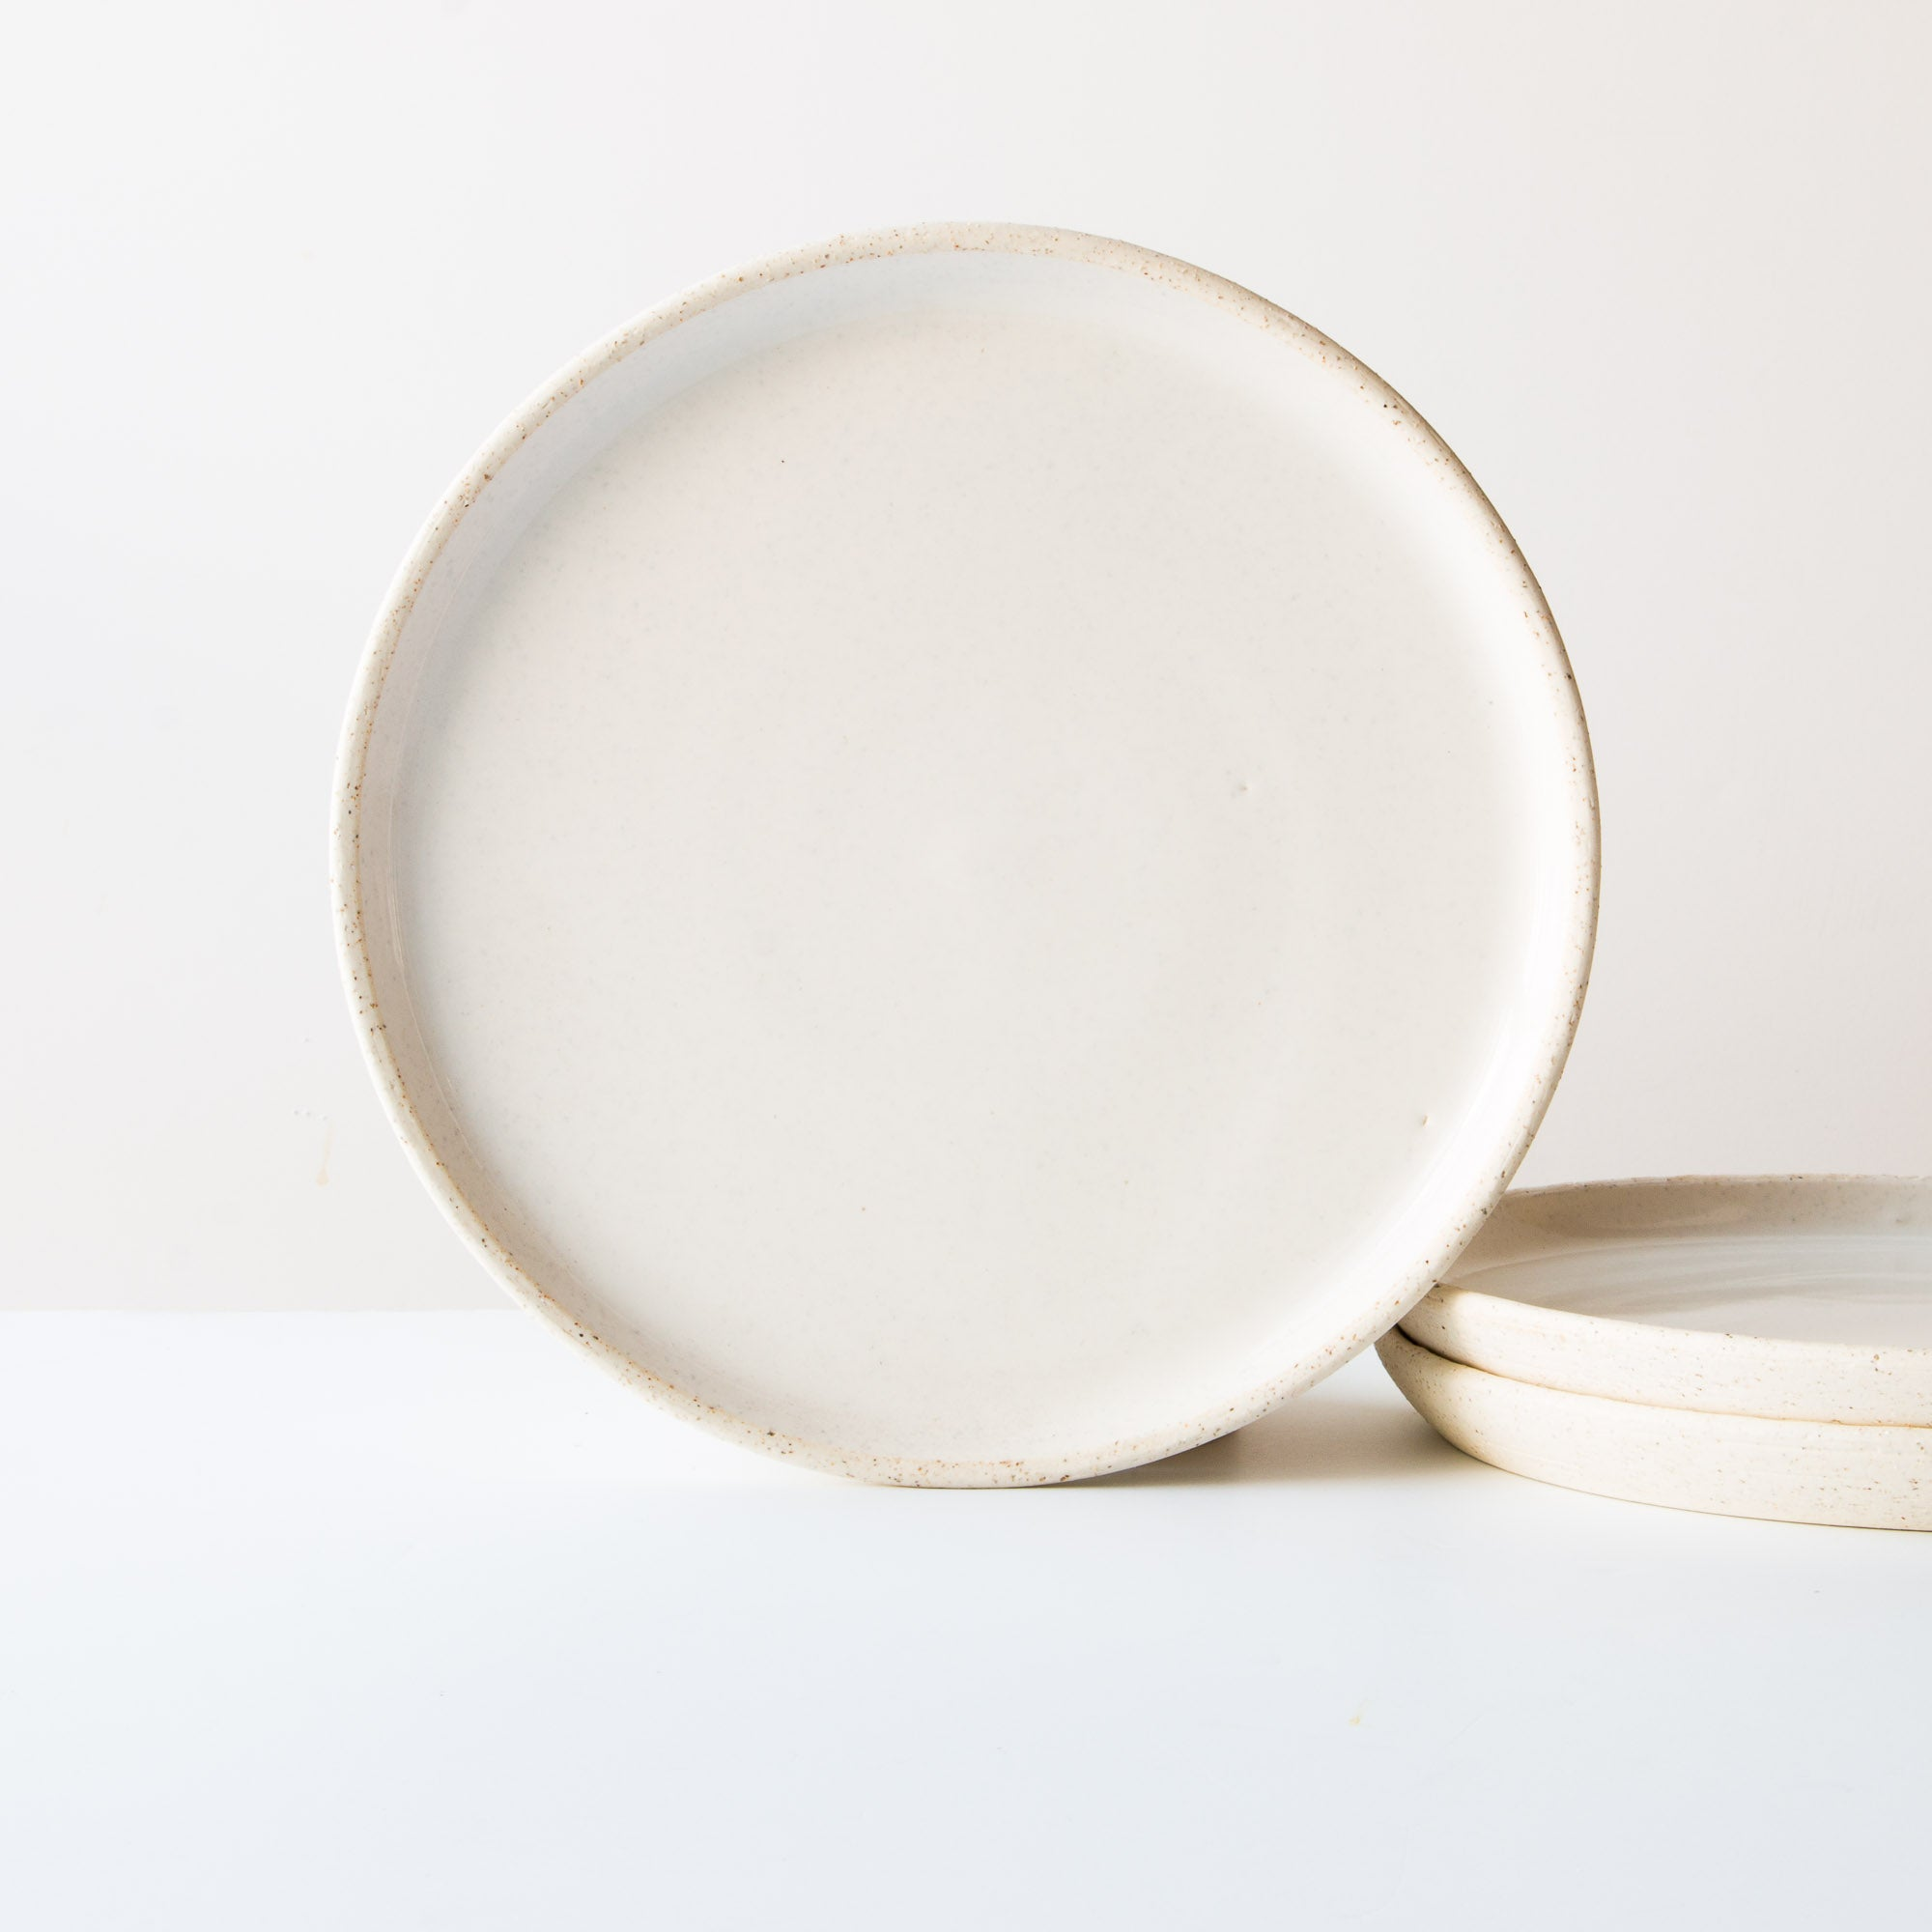 Oatmeal Clay - Soft White Glaze - Large Ceramic Dinner Plates - Handmade in Quebec ... & Large Ceramic Dinner Plate - Handmade Pottery Dinnerware - Chic \u0026 Basta